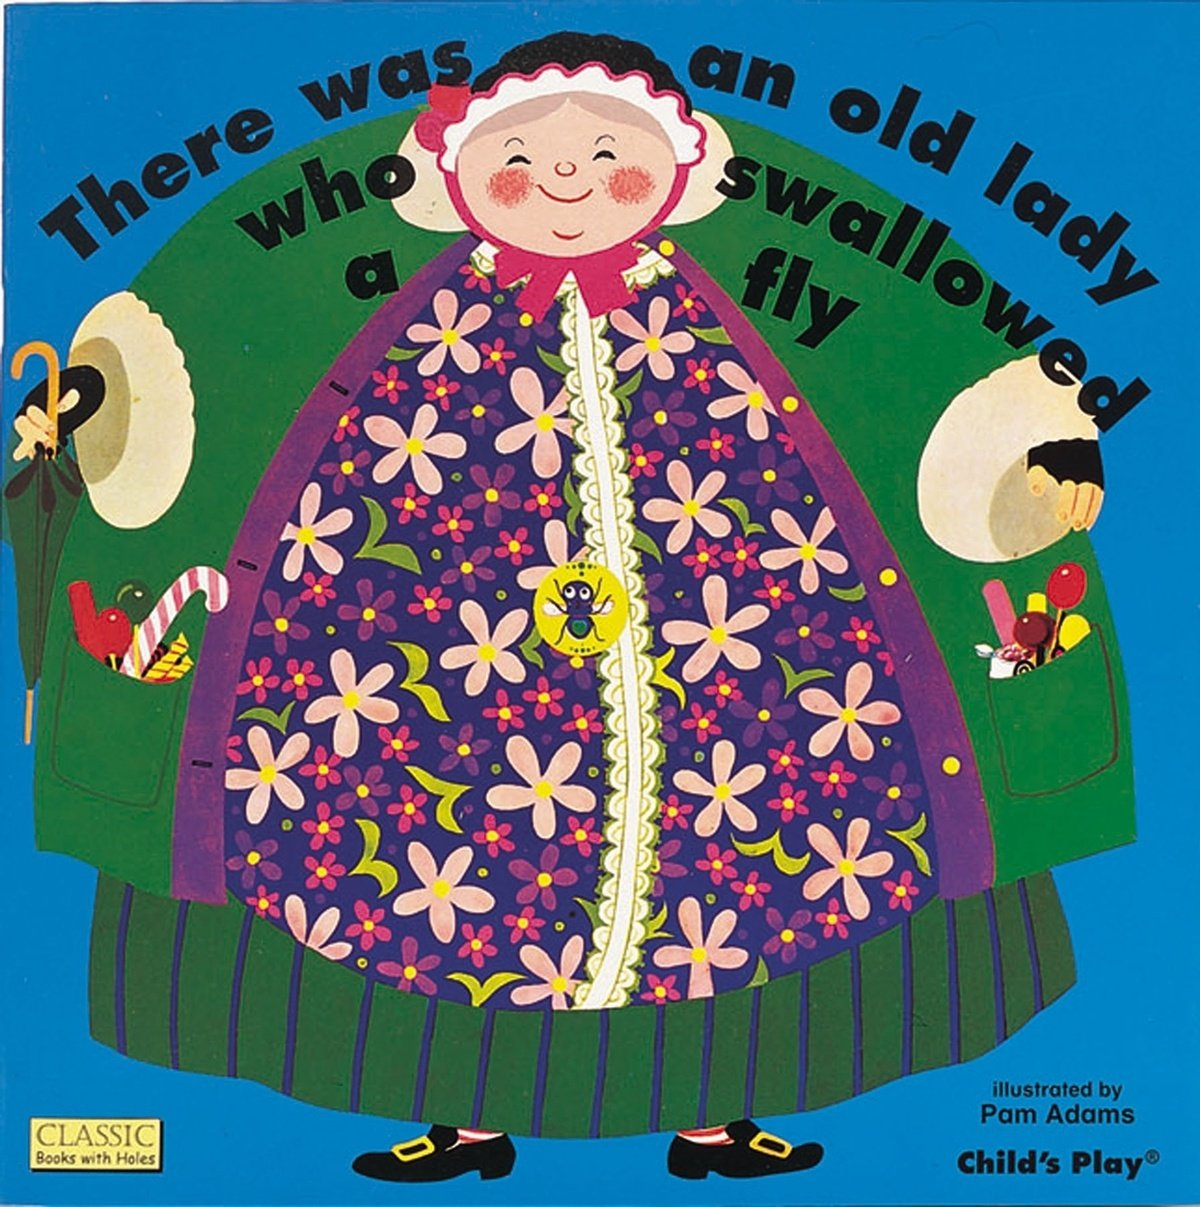 3 18 12 More Childhood Books You've Probably Forgotten About